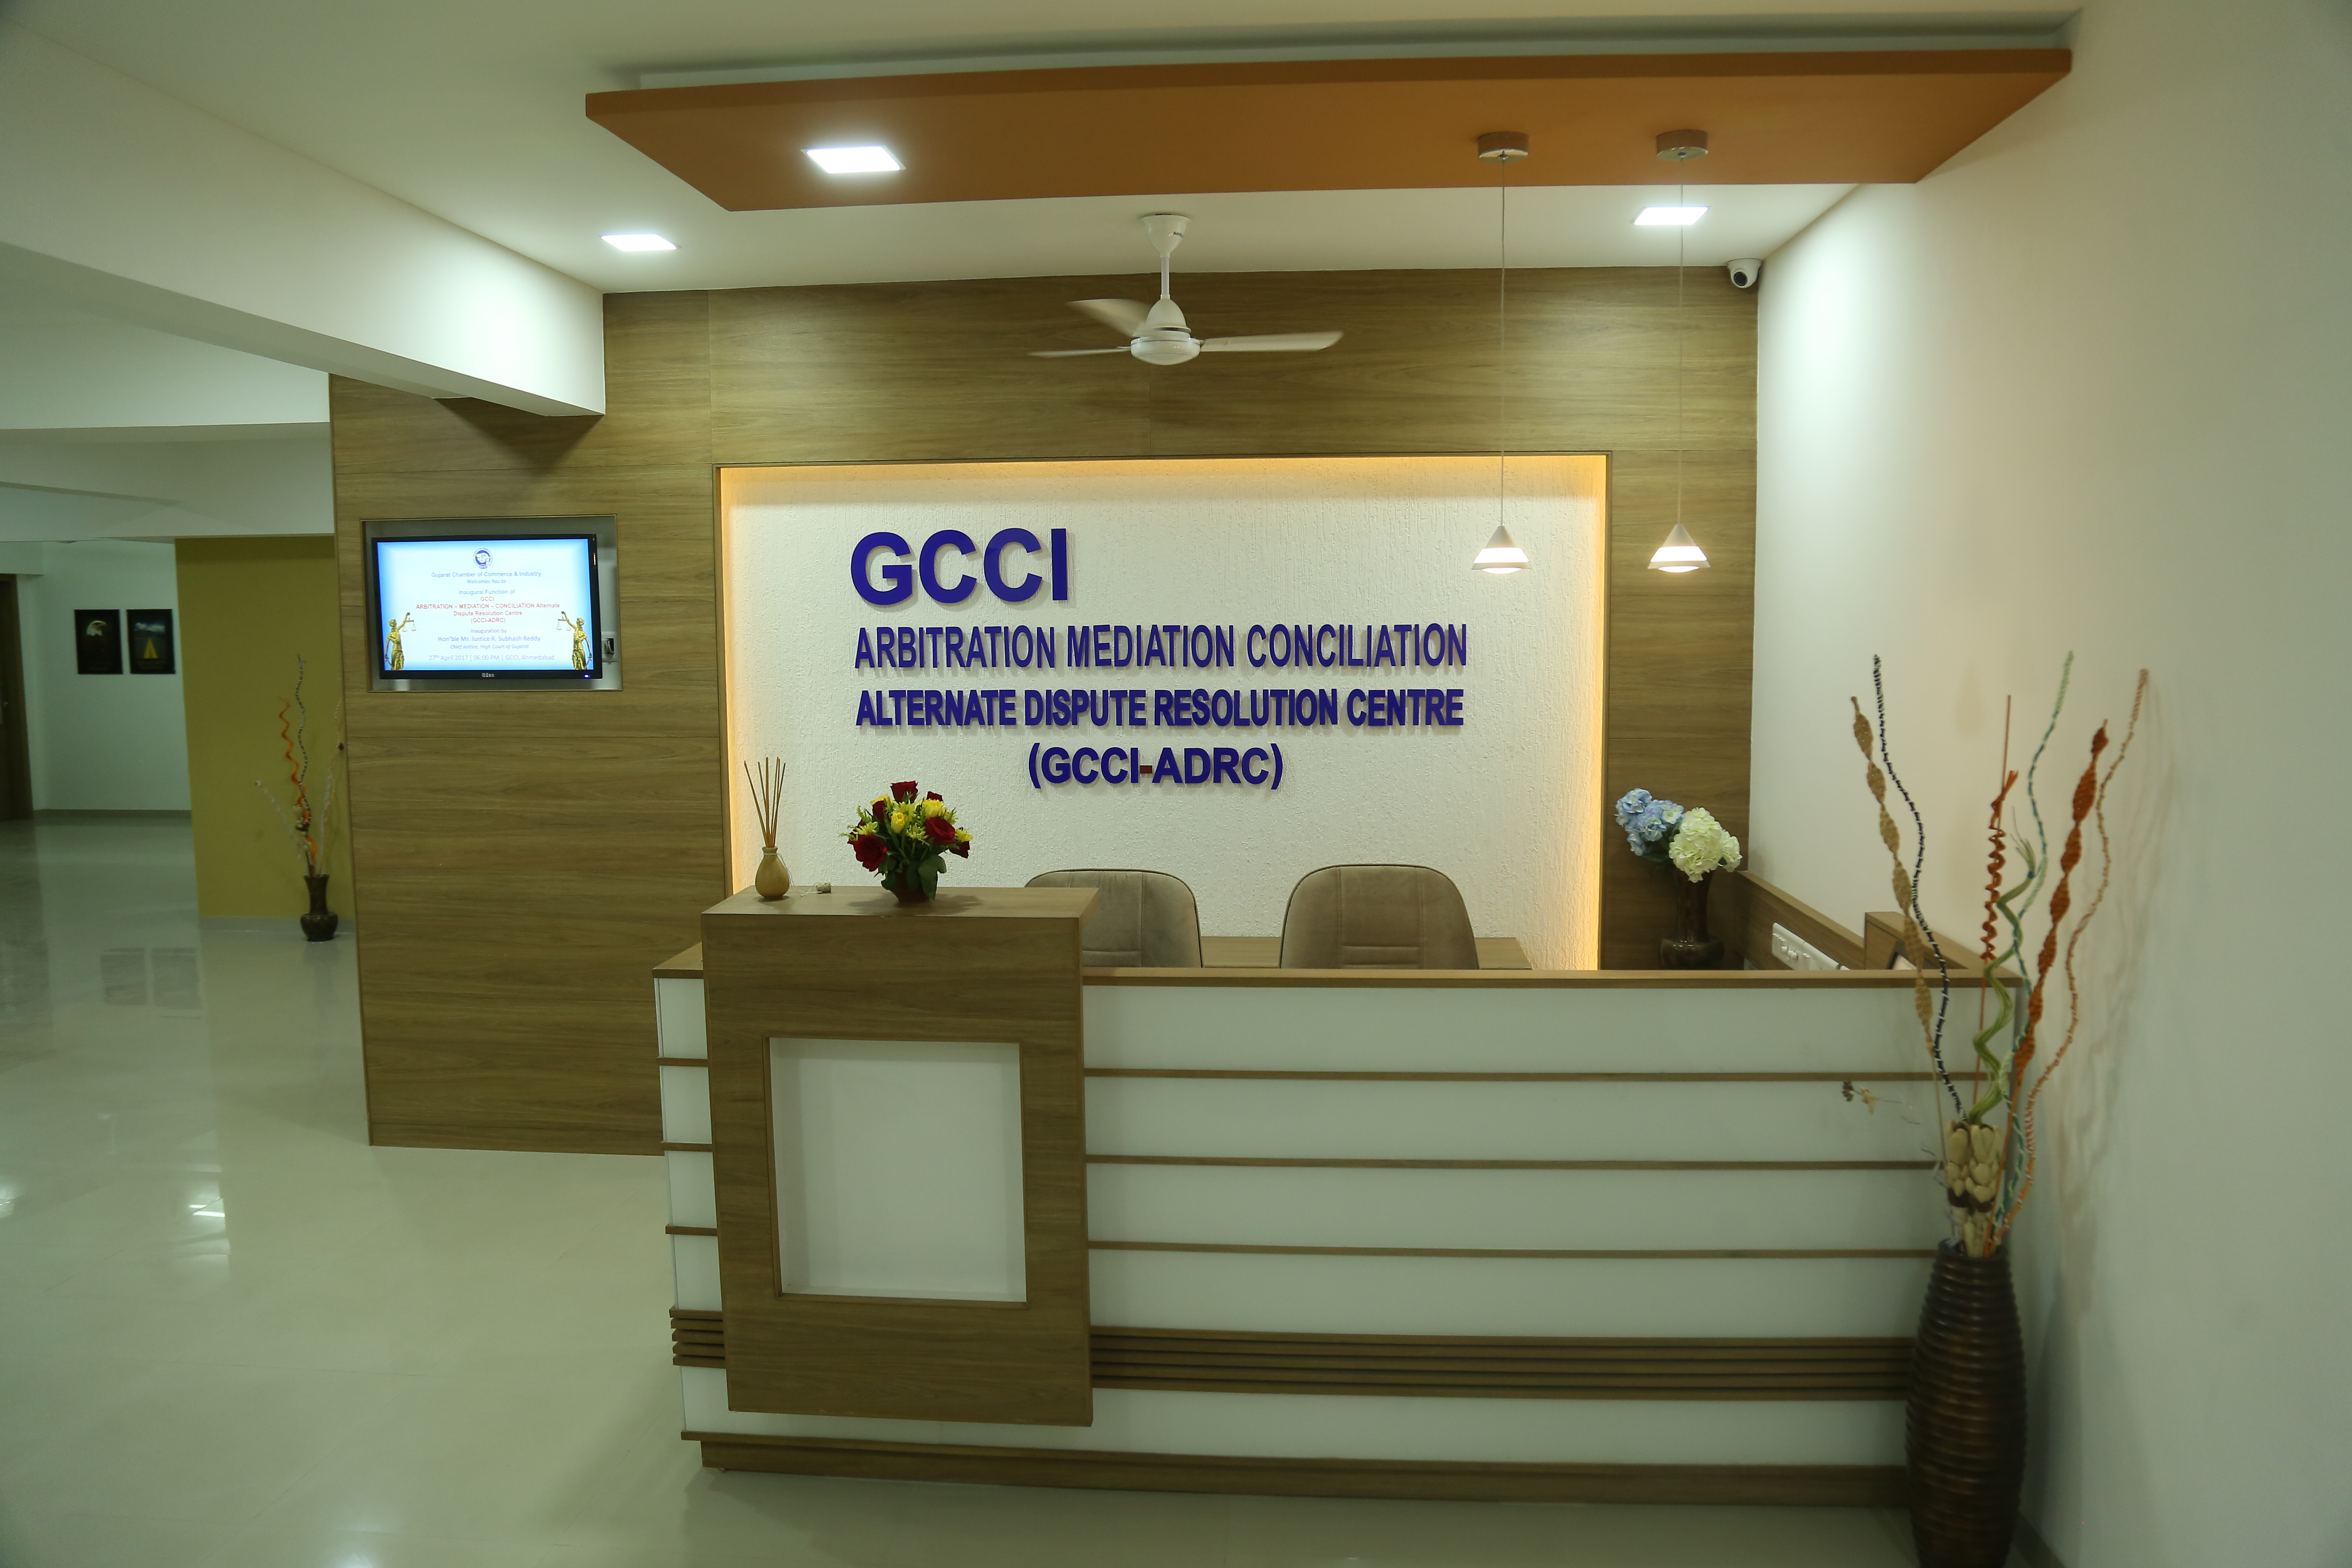 GCCI Arbitration, Mediation & Conciliation Centre Events Images